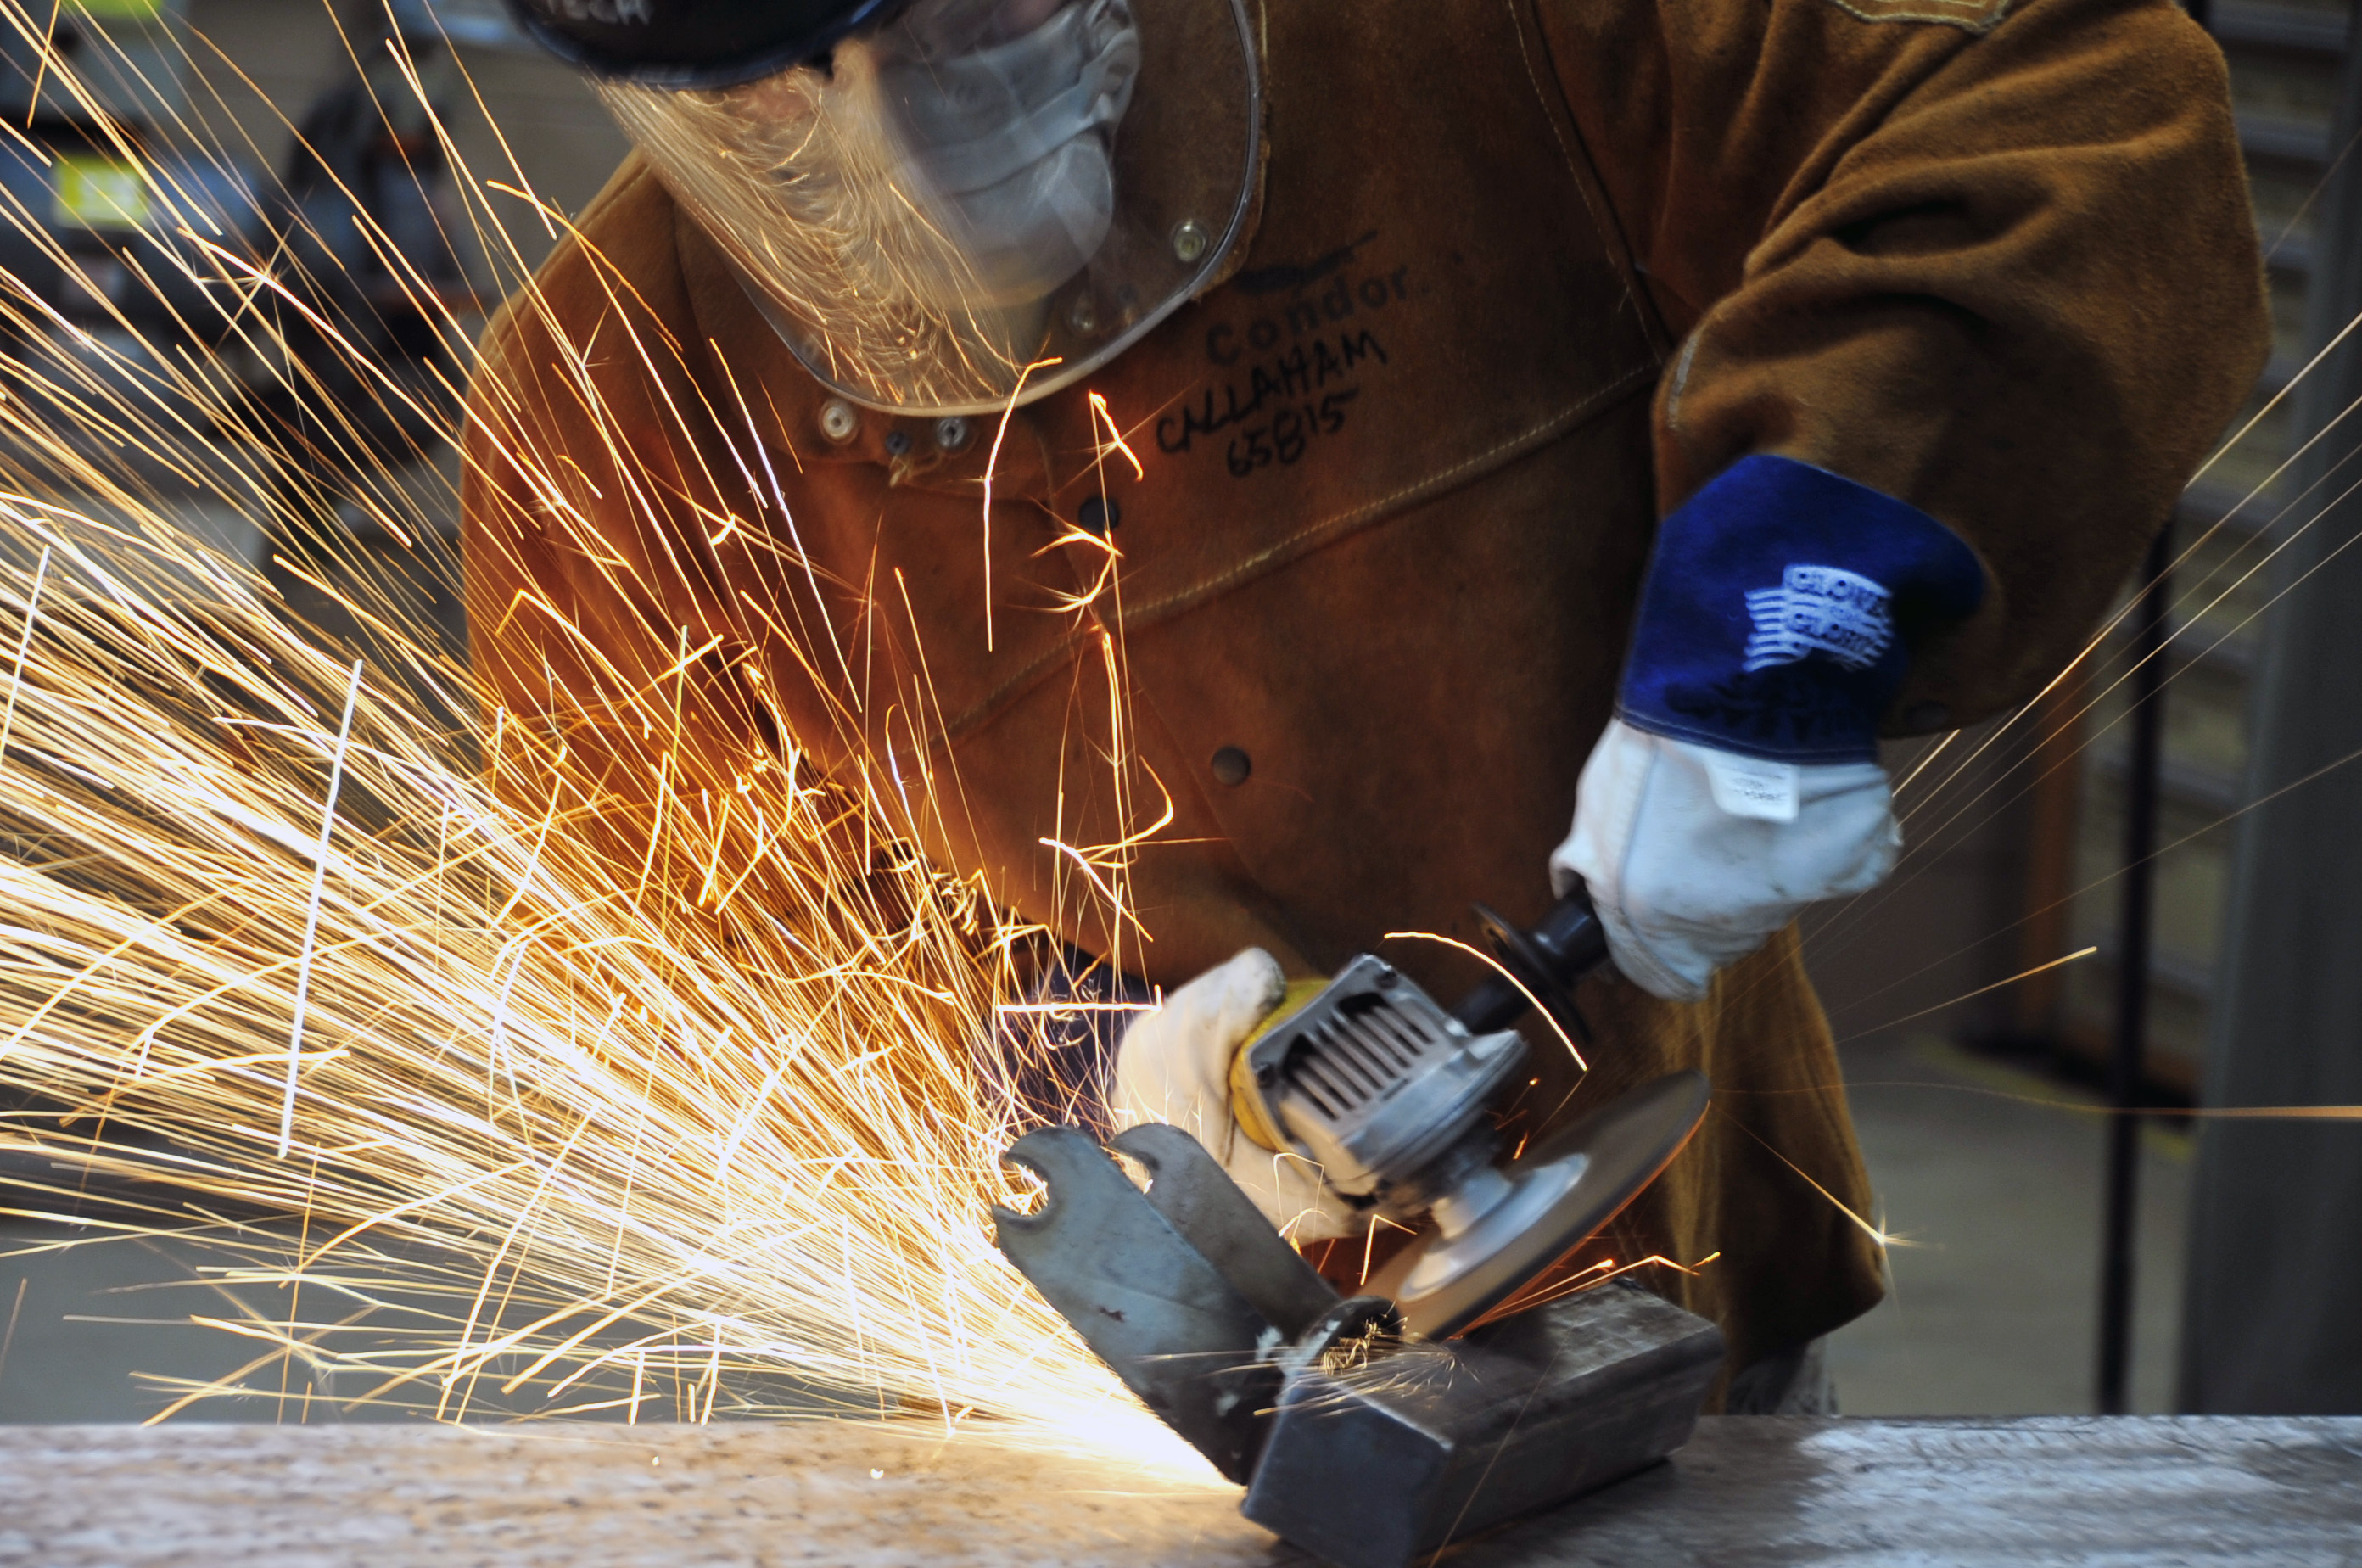 dynamic metal fabrication market poised for growth